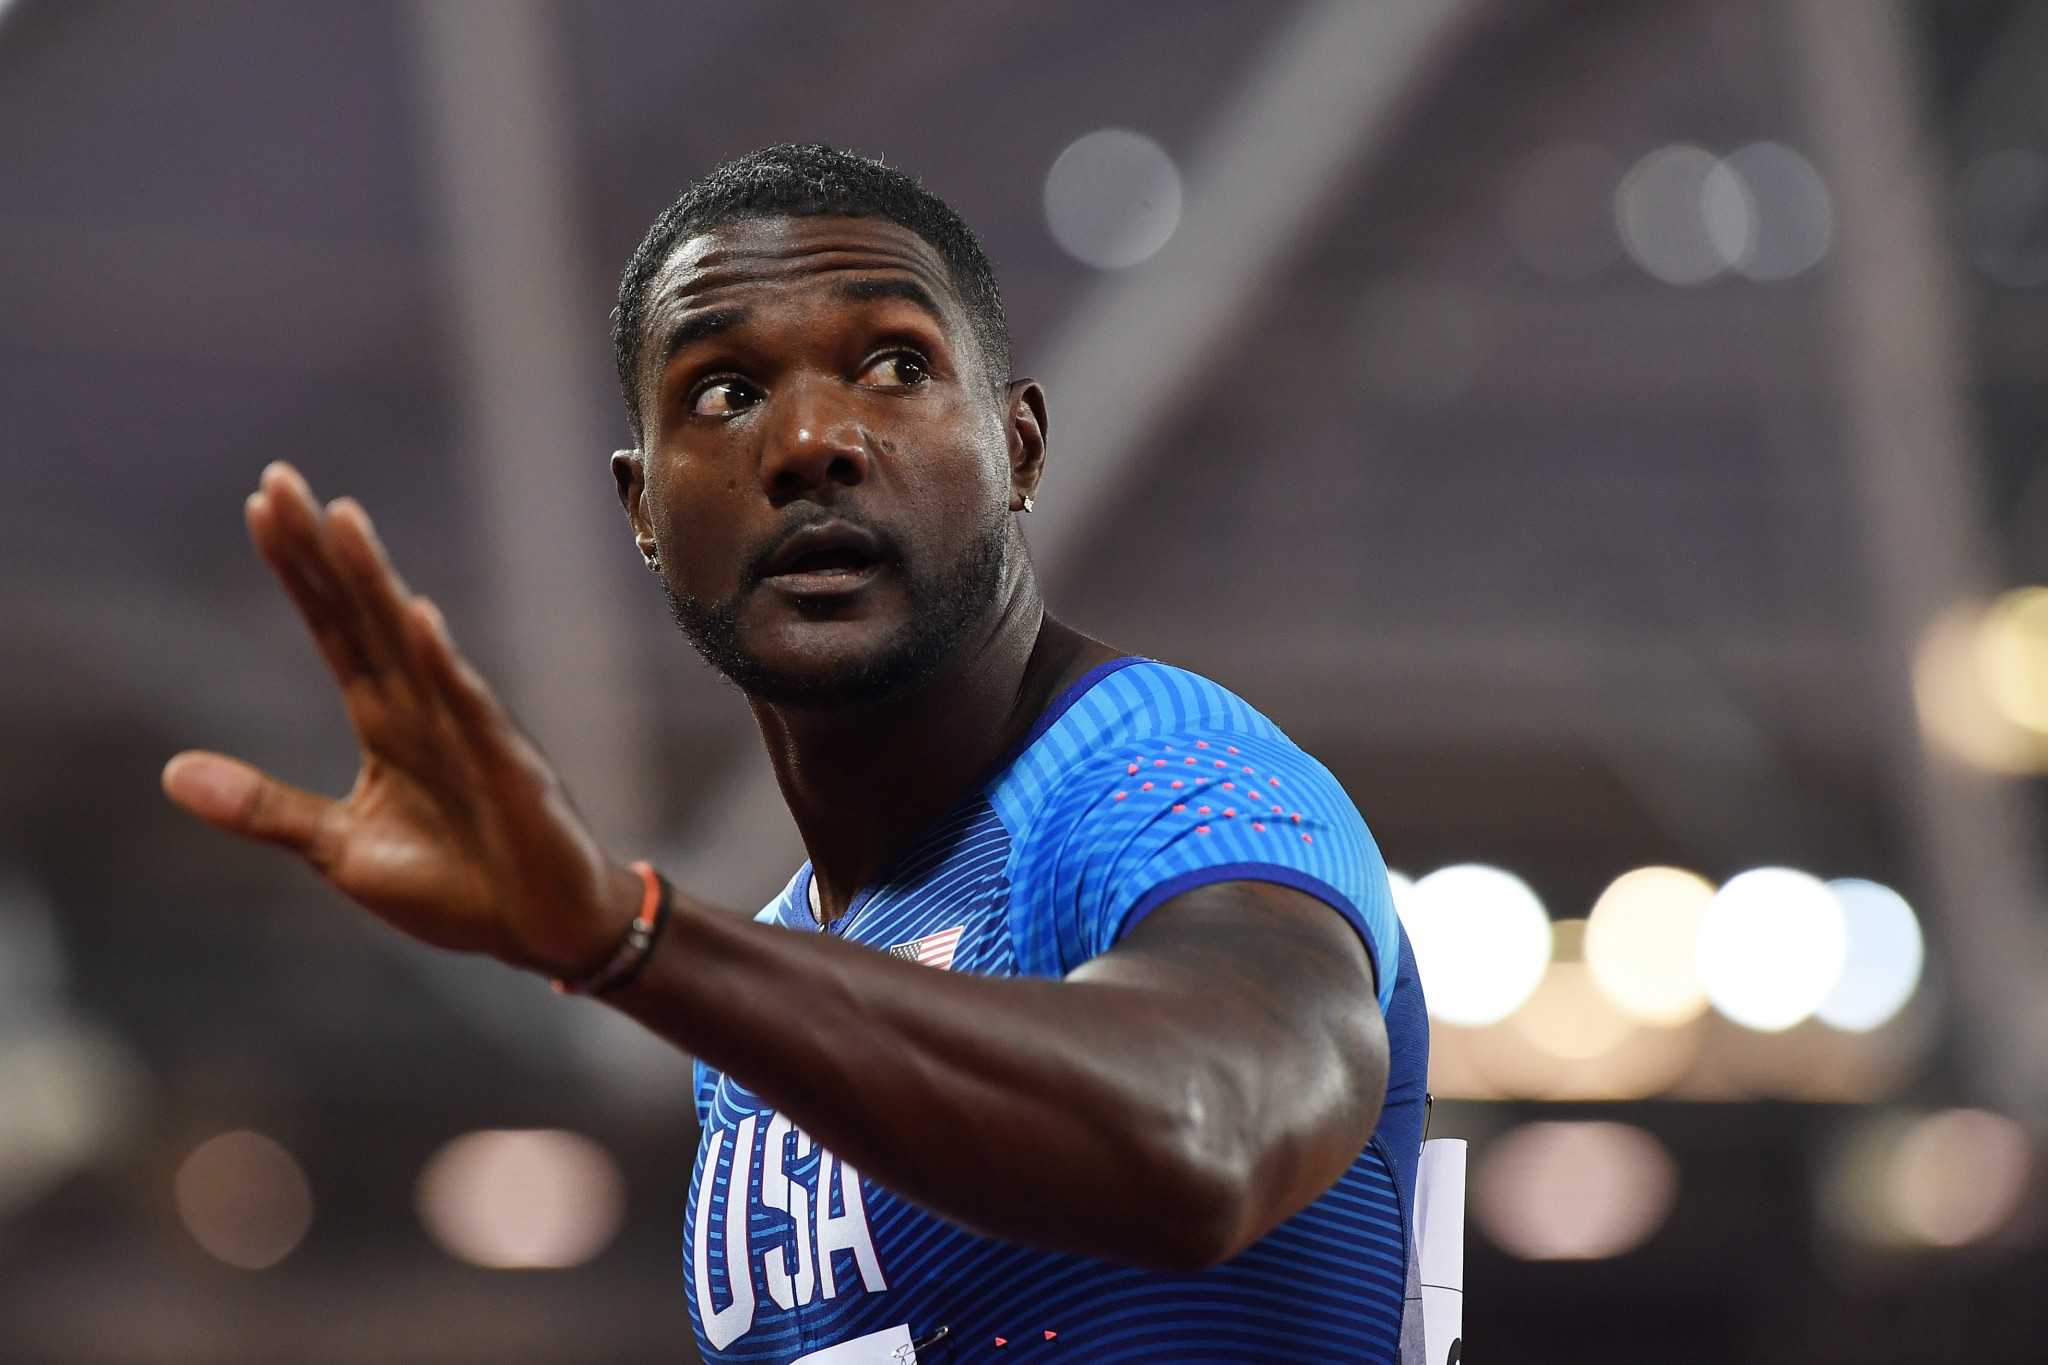 Robert Wagner has claimed Justin Gatlin and